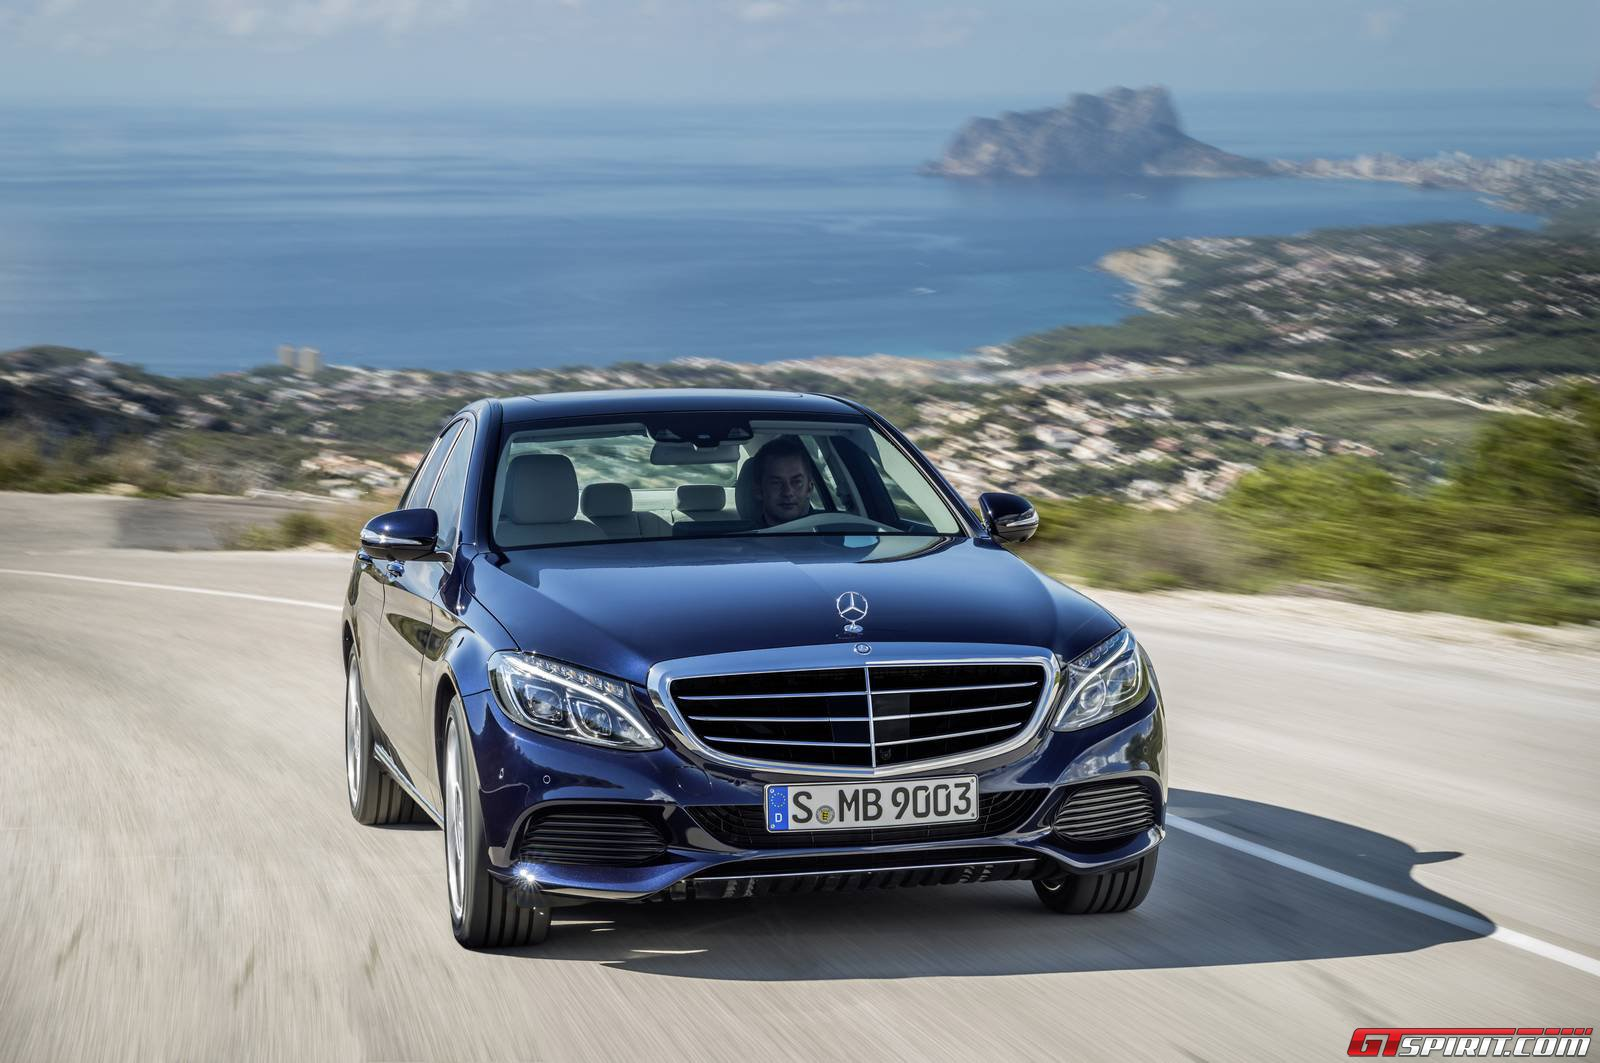 2014 mercedes benz c class was revealed all around the new c class is. Cars Review. Best American Auto & Cars Review